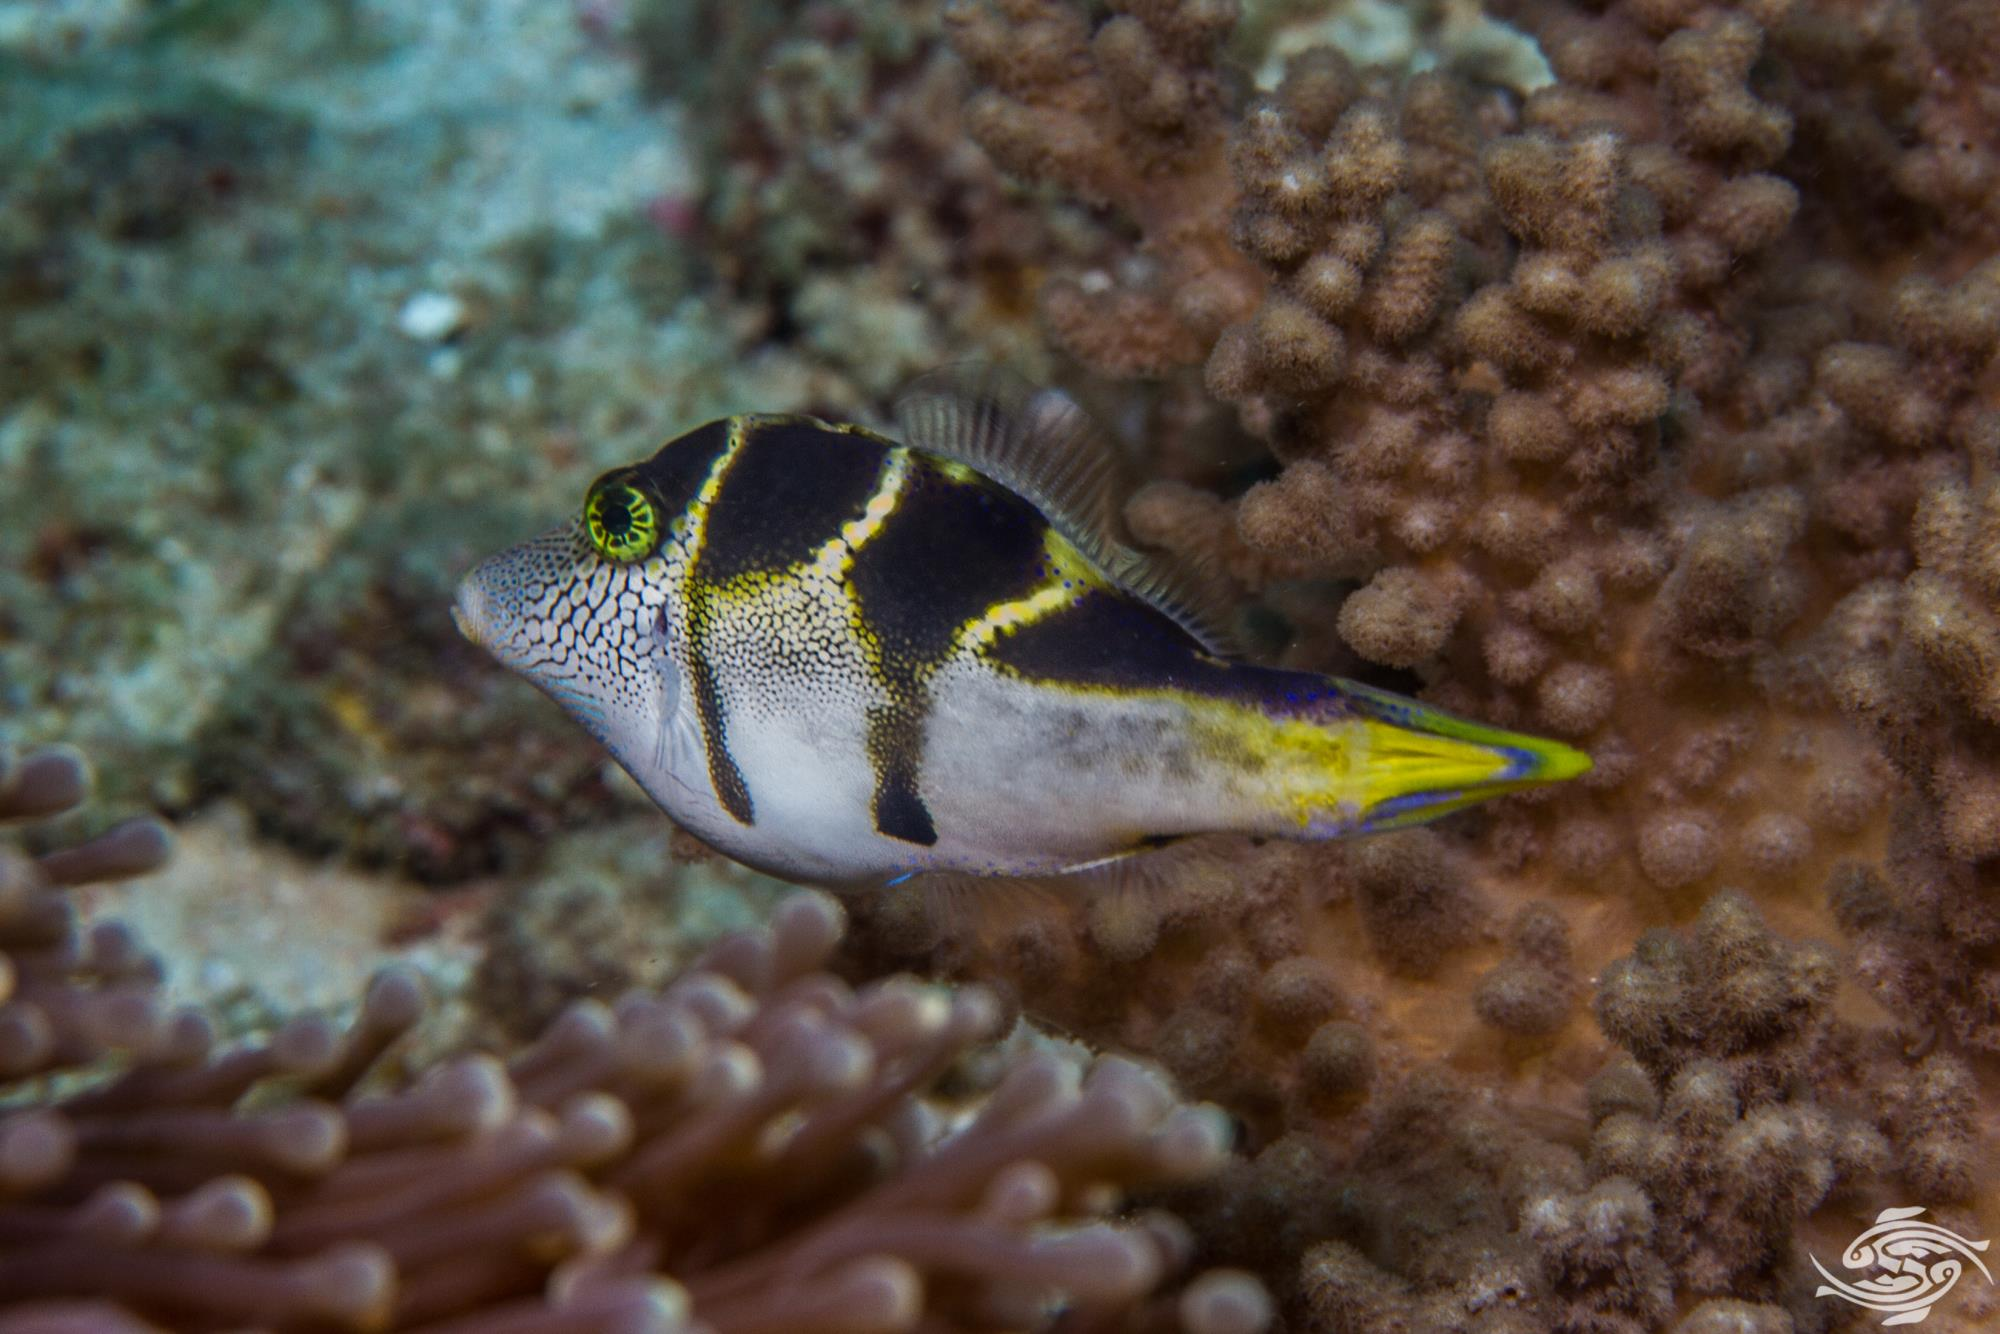 blacksaddle filefish, Paraluteres prionurus, is also known as the mimic filefish or blacksaddle leatherjacket